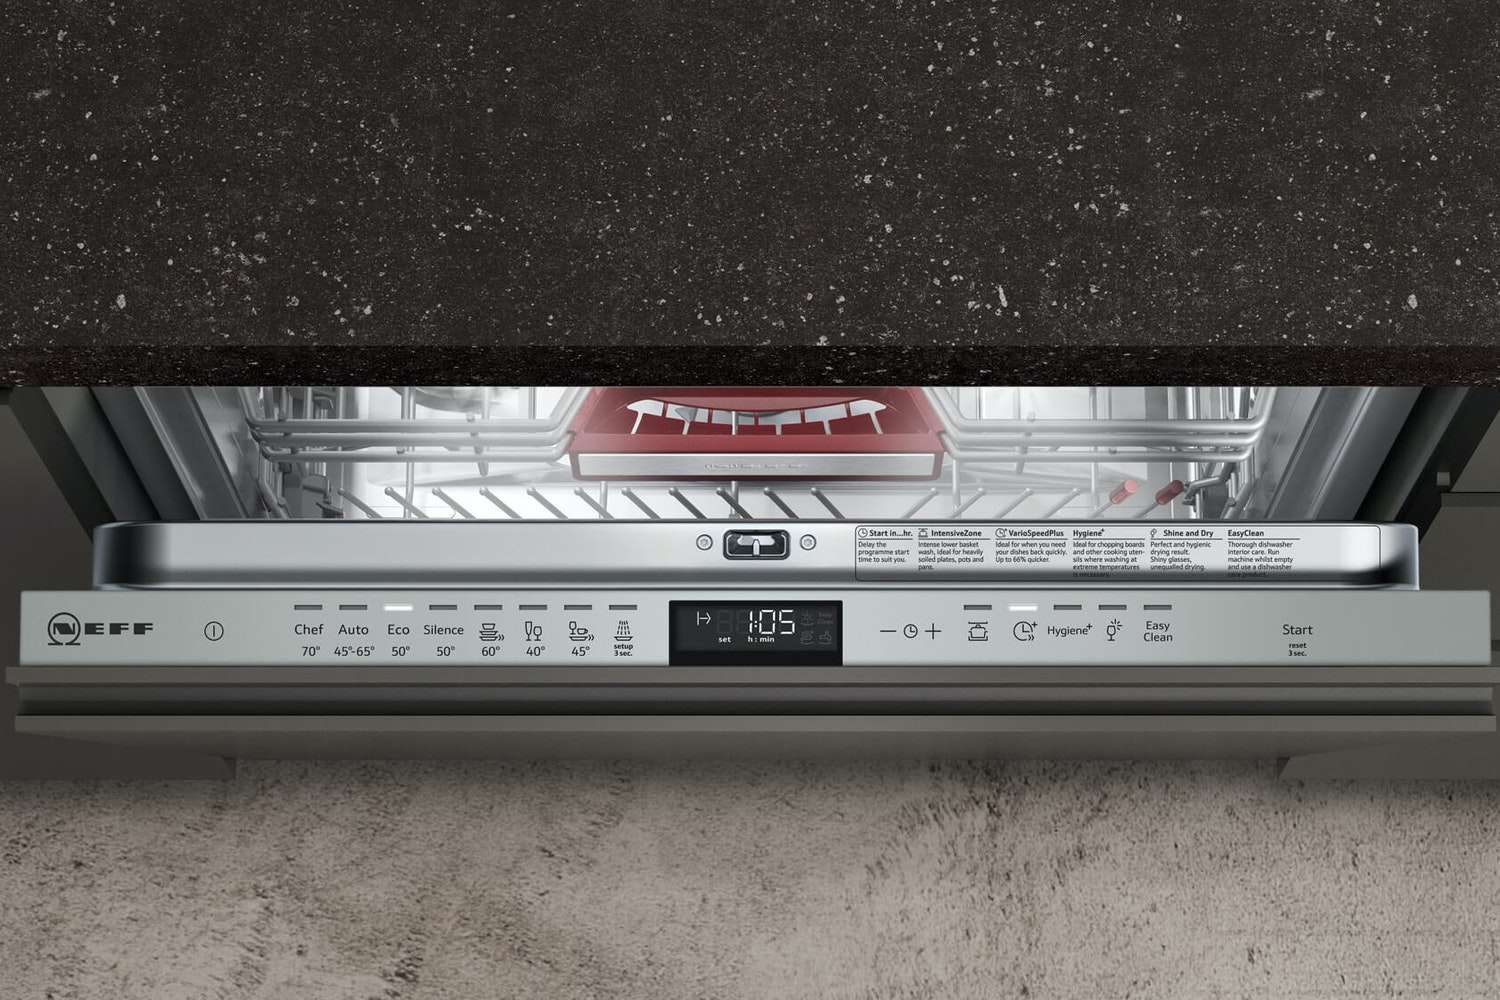 Neff Fully Integrated Dishwasher | 14 Place | S515T80D0G